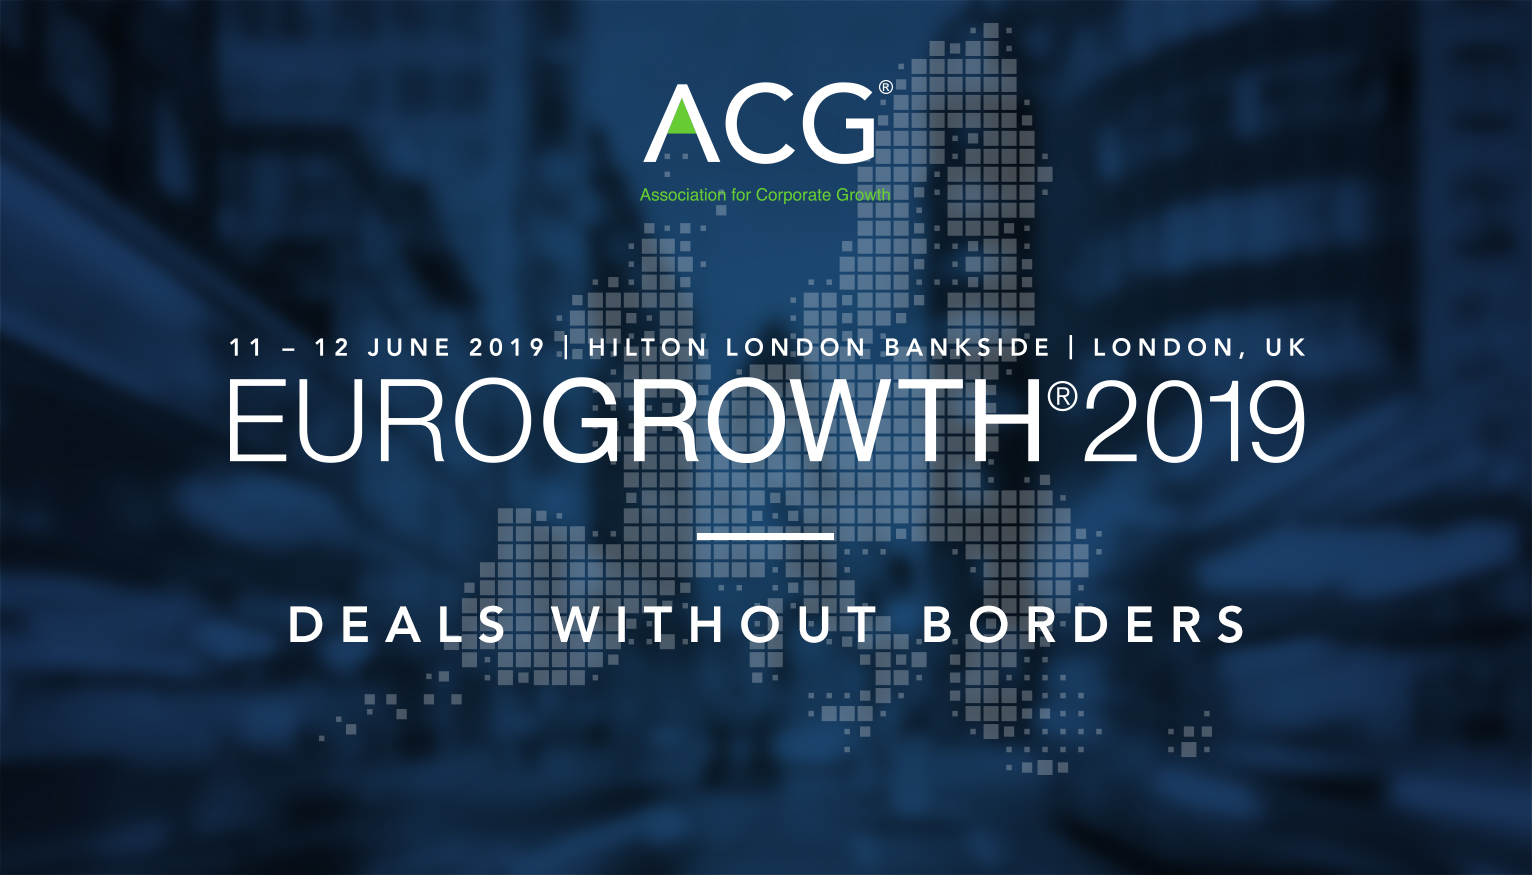 EuroGrowth 2019 | Deals Without Borders